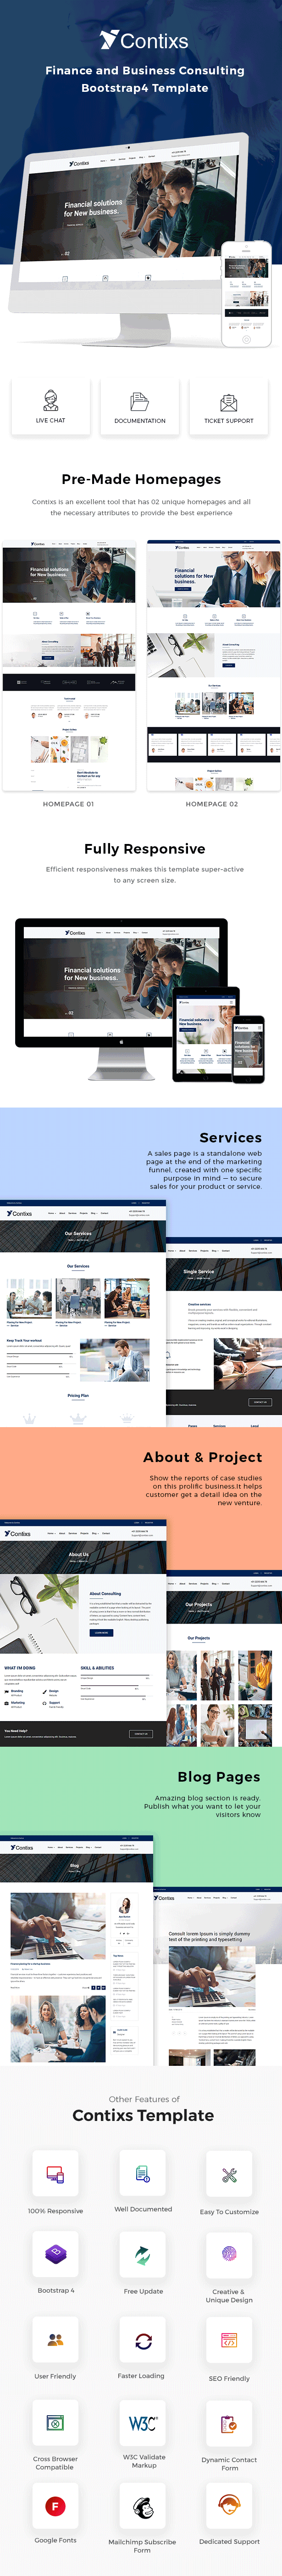 Contixs - Finance and Business Consulting Bootstrap 4 Template